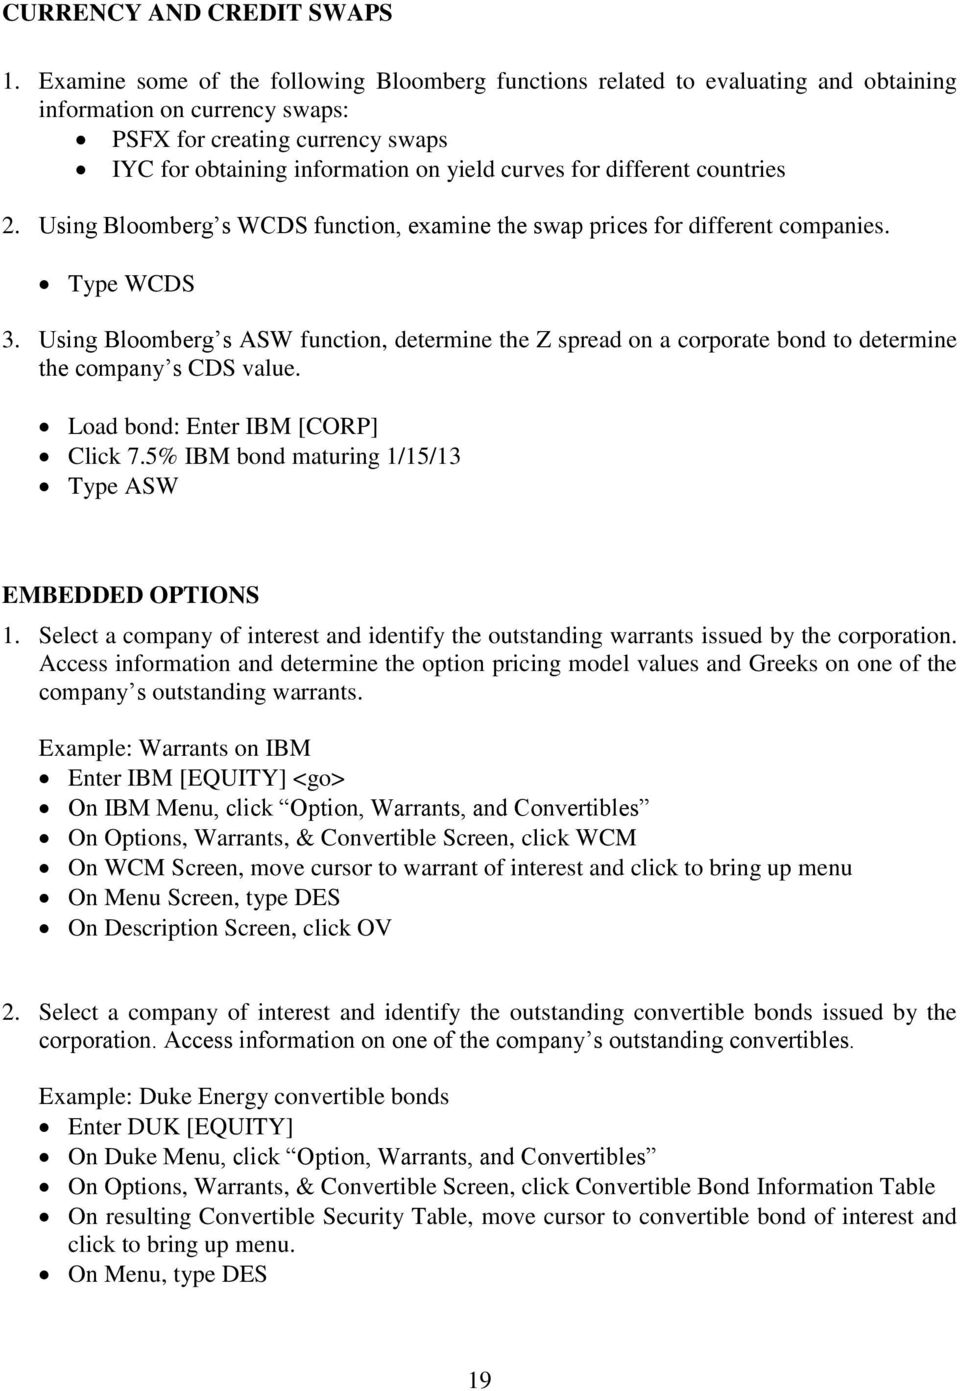 BLOOMBERG DERIVATIVE EXERCISES  1  Select a stock of